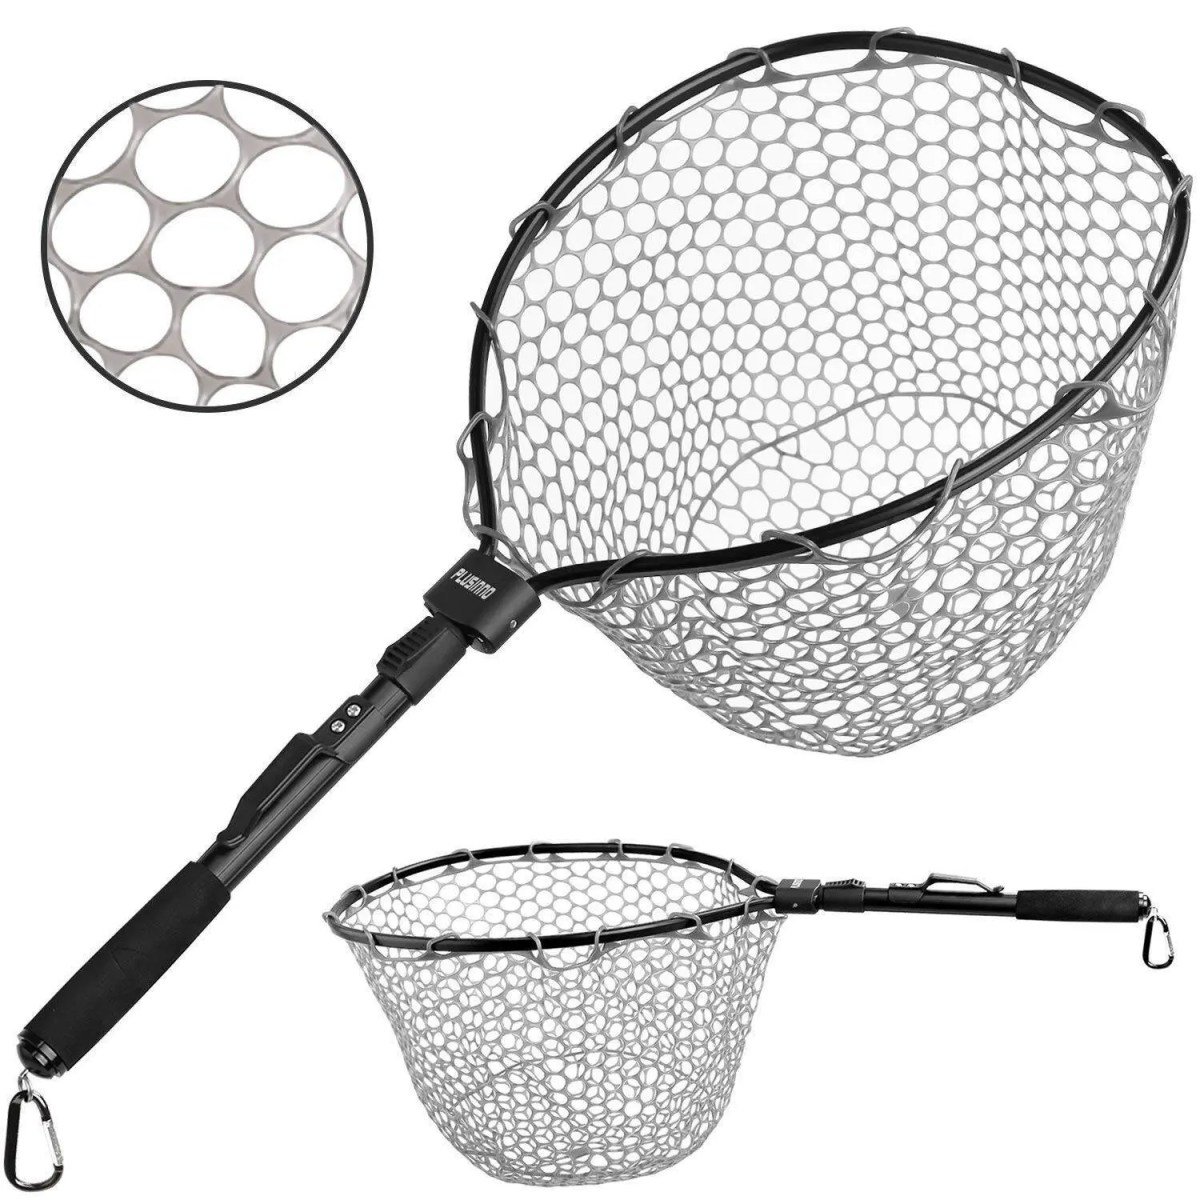 PLUSINNO Fly Fishing Net Fish Landing Net